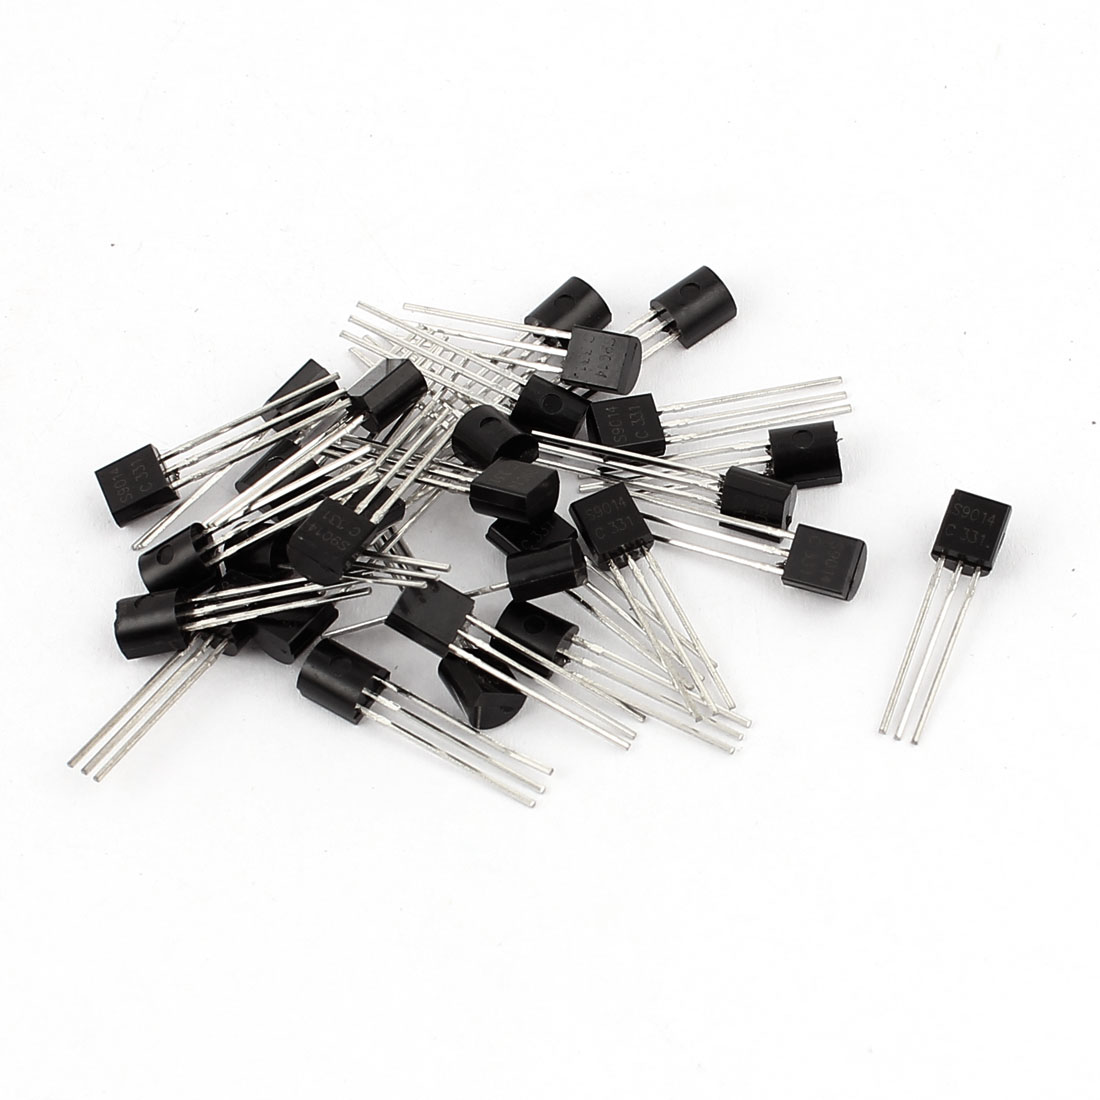 30 Pcs S9014 TO-92 NPN Bipolar Low Power Junction Transistors 50V 0.15A